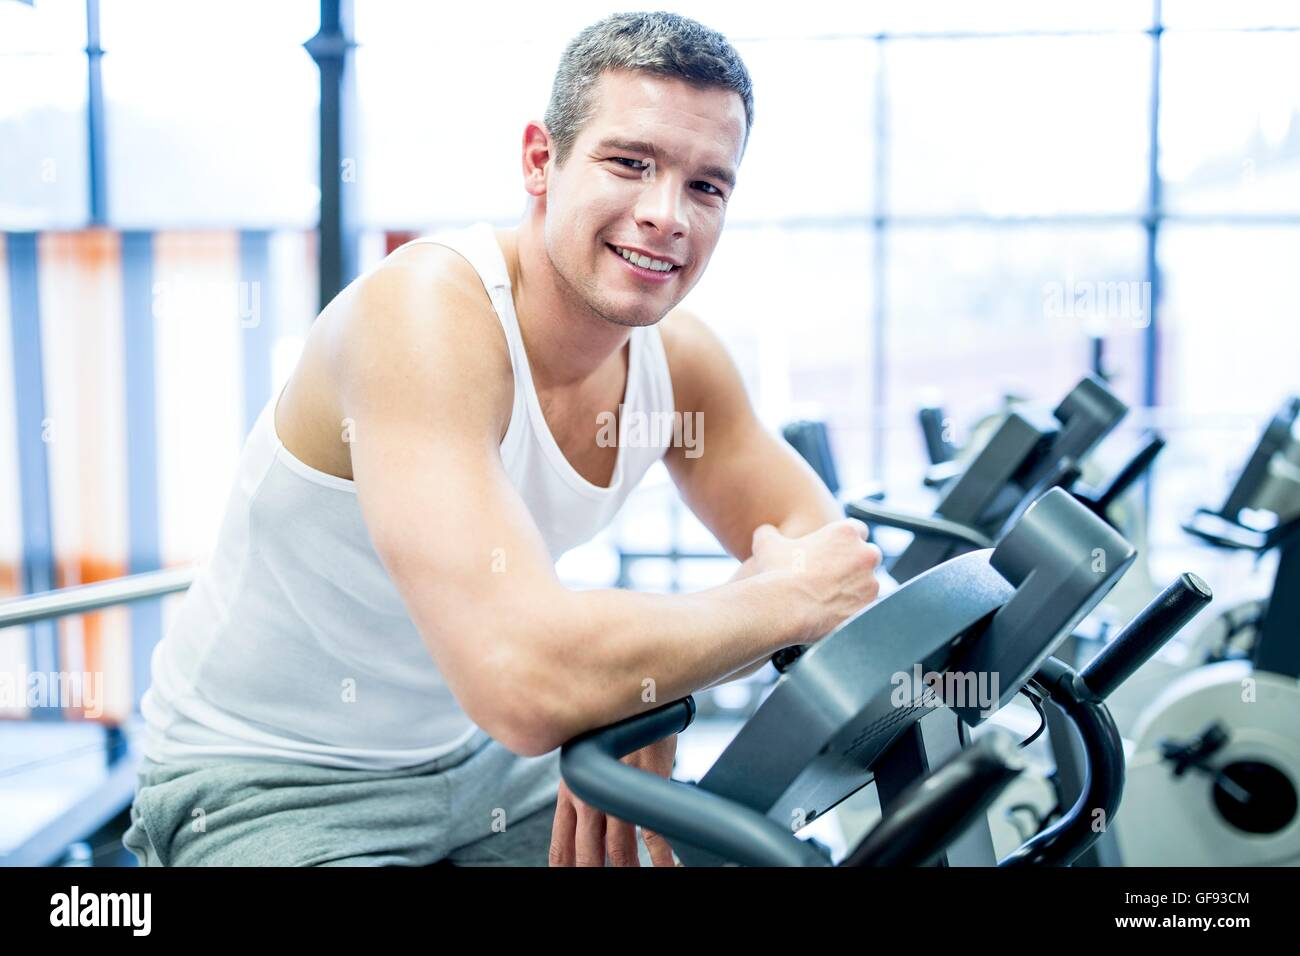 PROPERTY RELEASED. MODEL RELEASED. Portrait of young man resting while work out in gym, smiling. - Stock Image